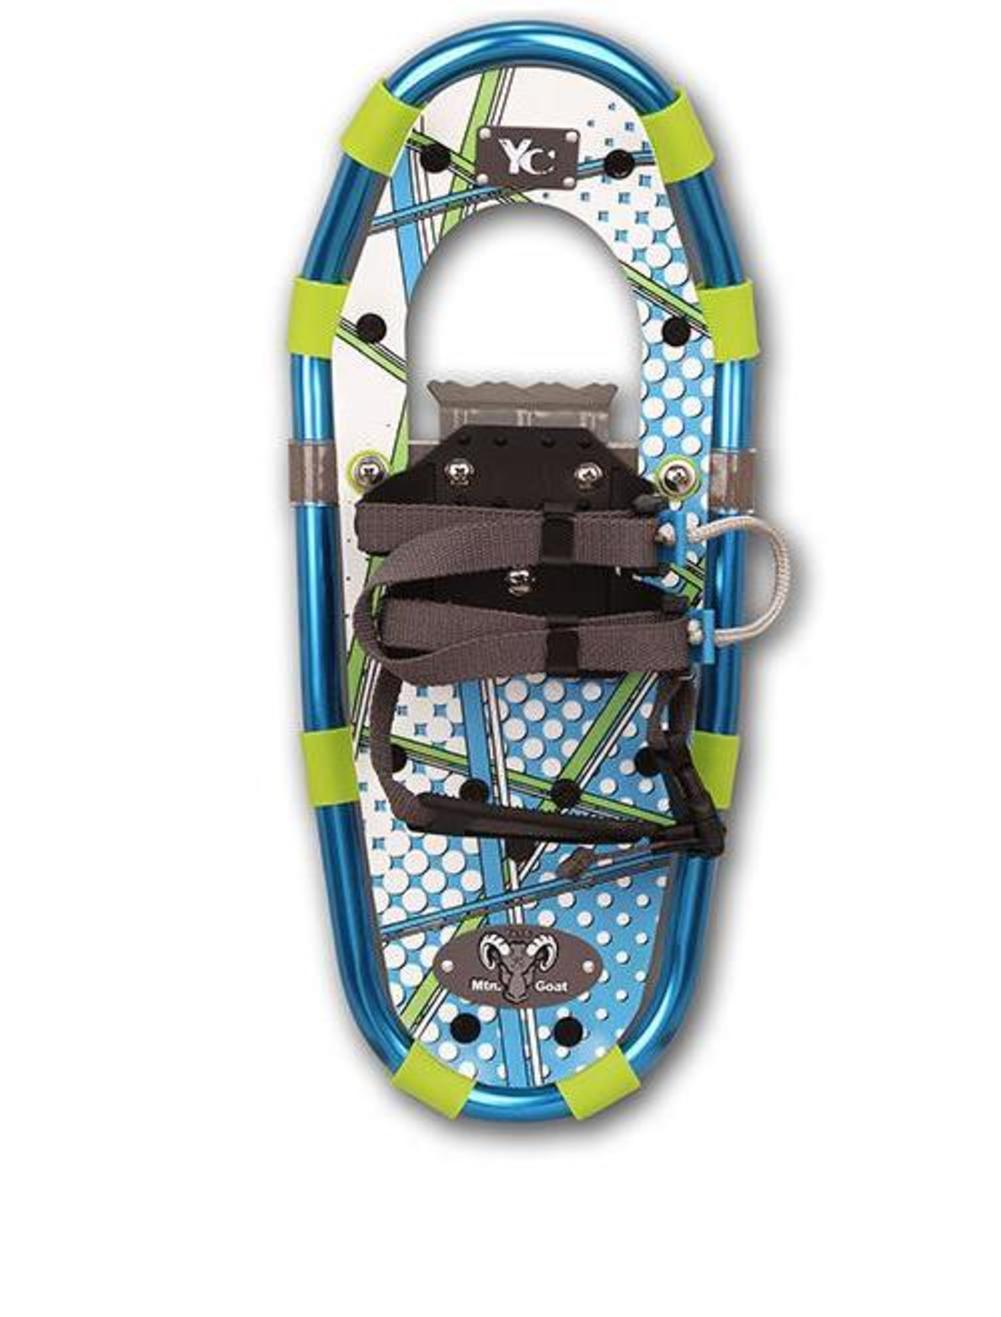 Yukon Charlies Jr. Series Aluminum Youth Snowshoes 7x16in. Ballistic Blue (Blue, OSFM) by Yukon Charlies